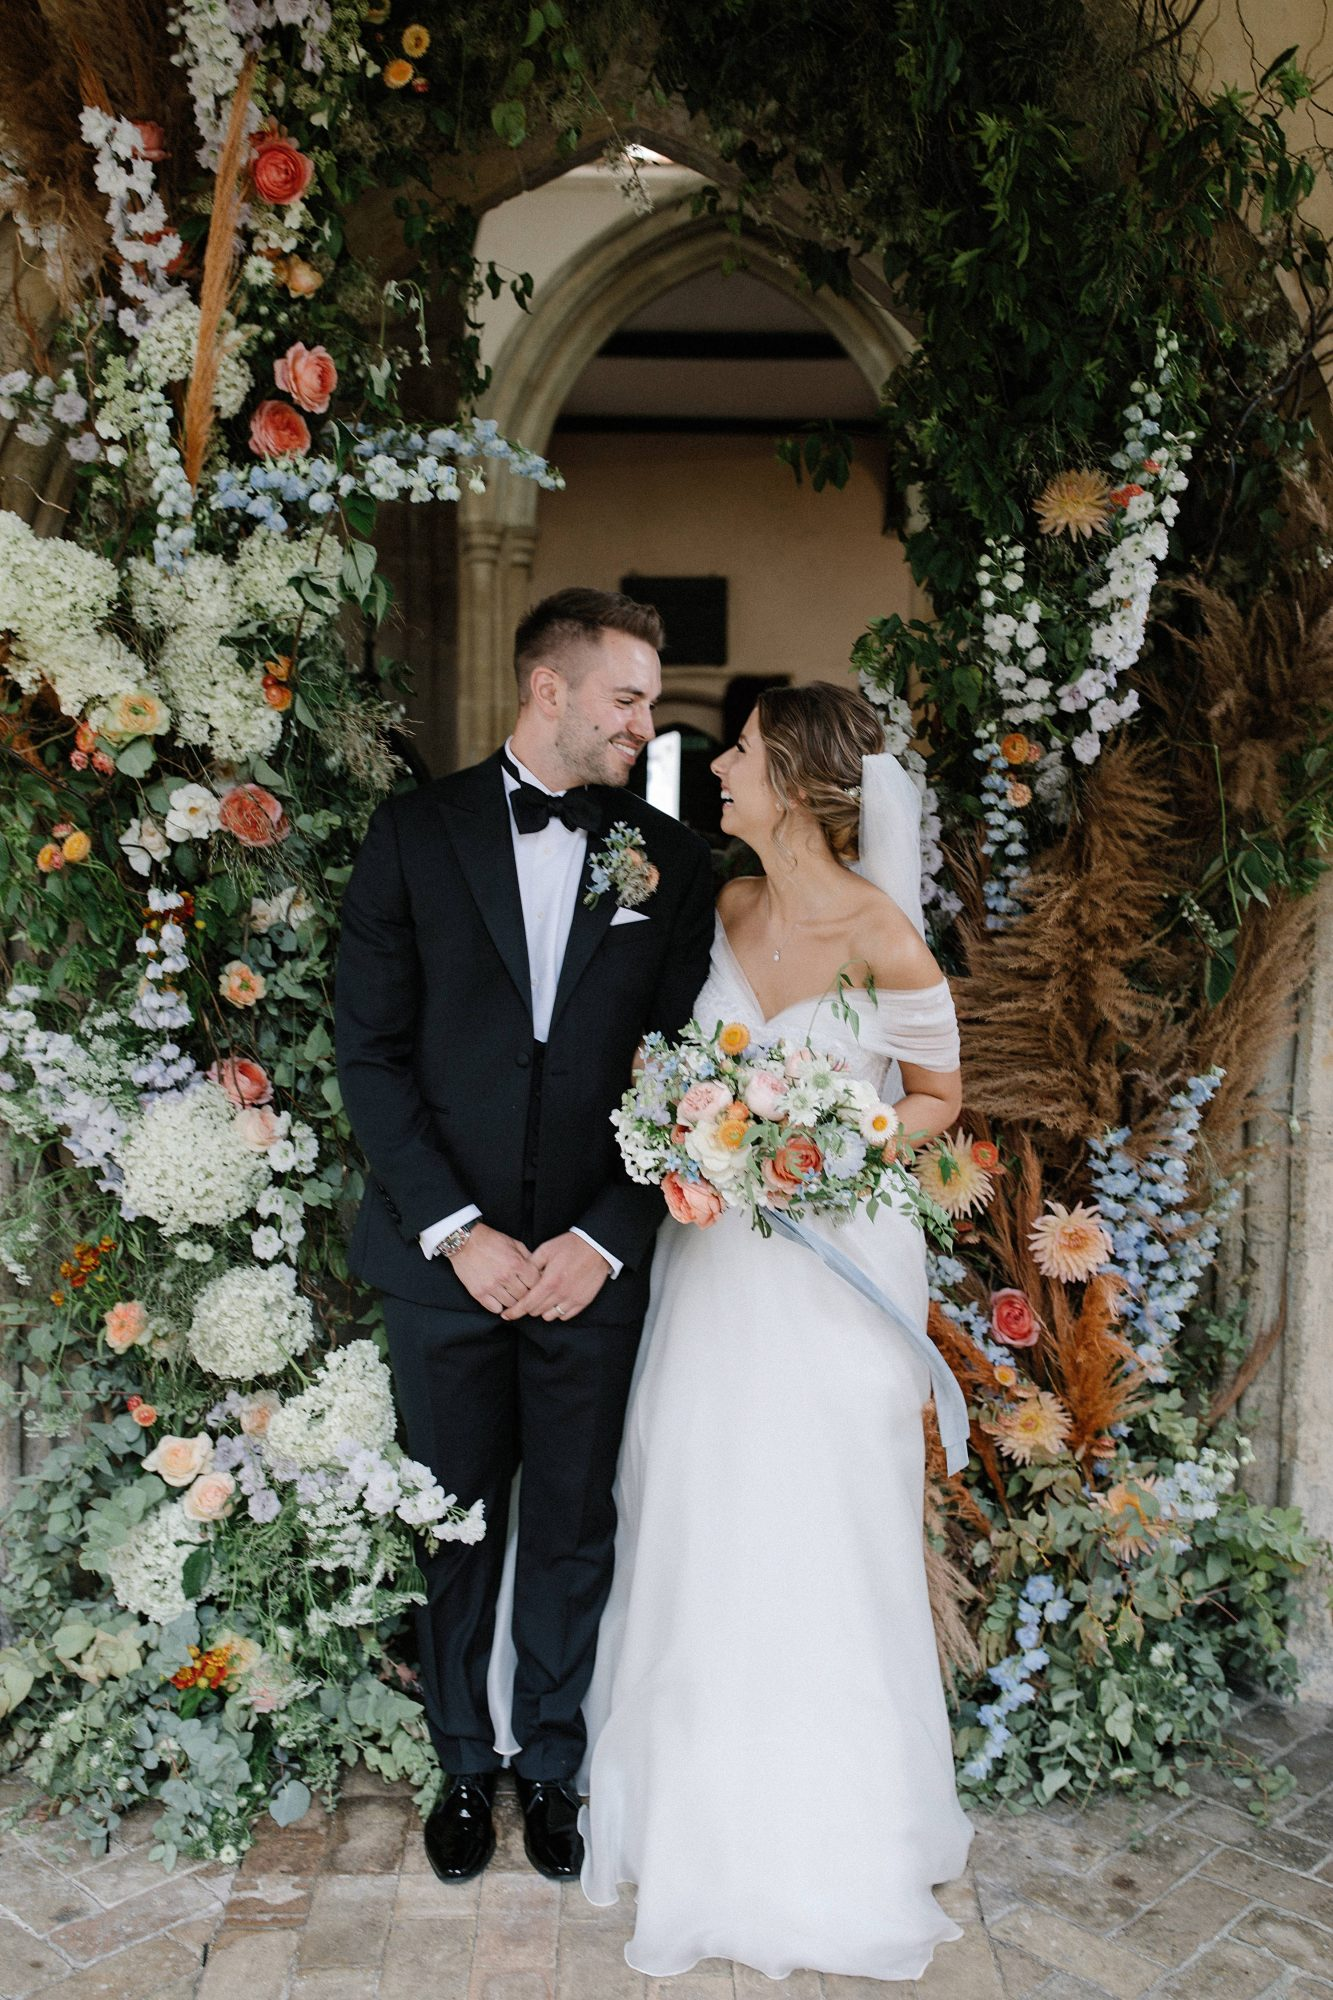 laurie lee wedding couple smiling under floral archway